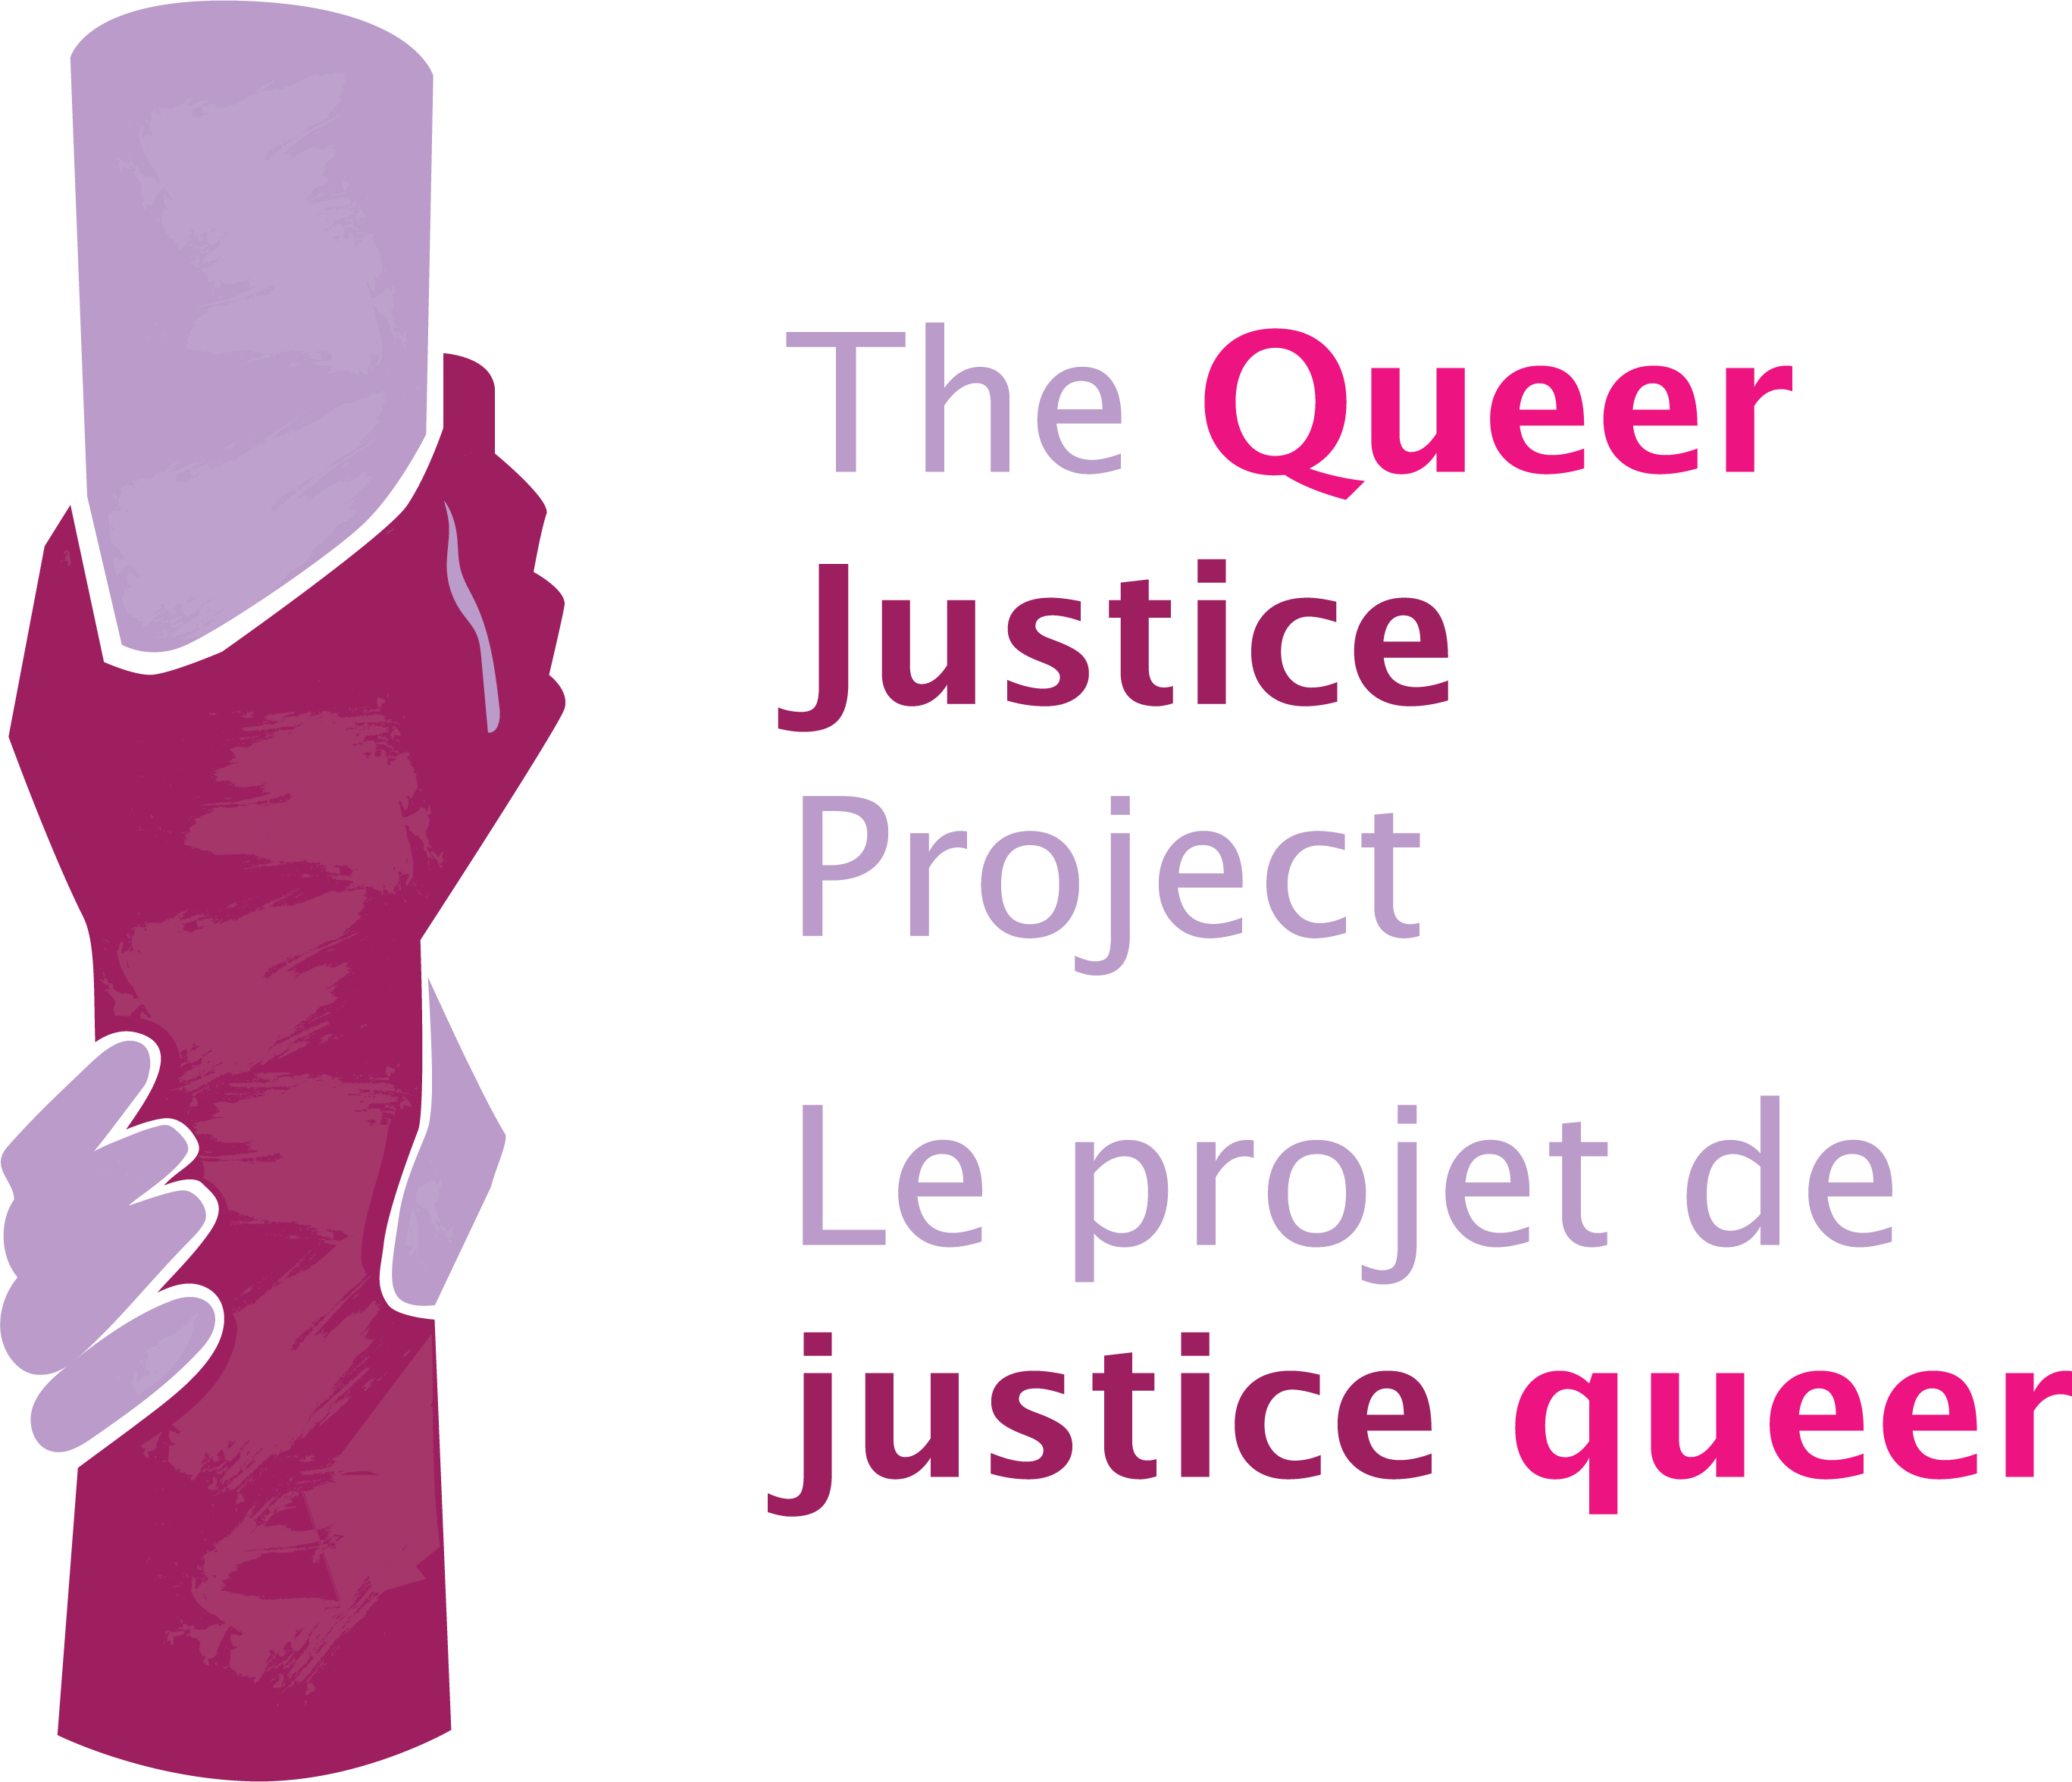 The Queer Justice Project